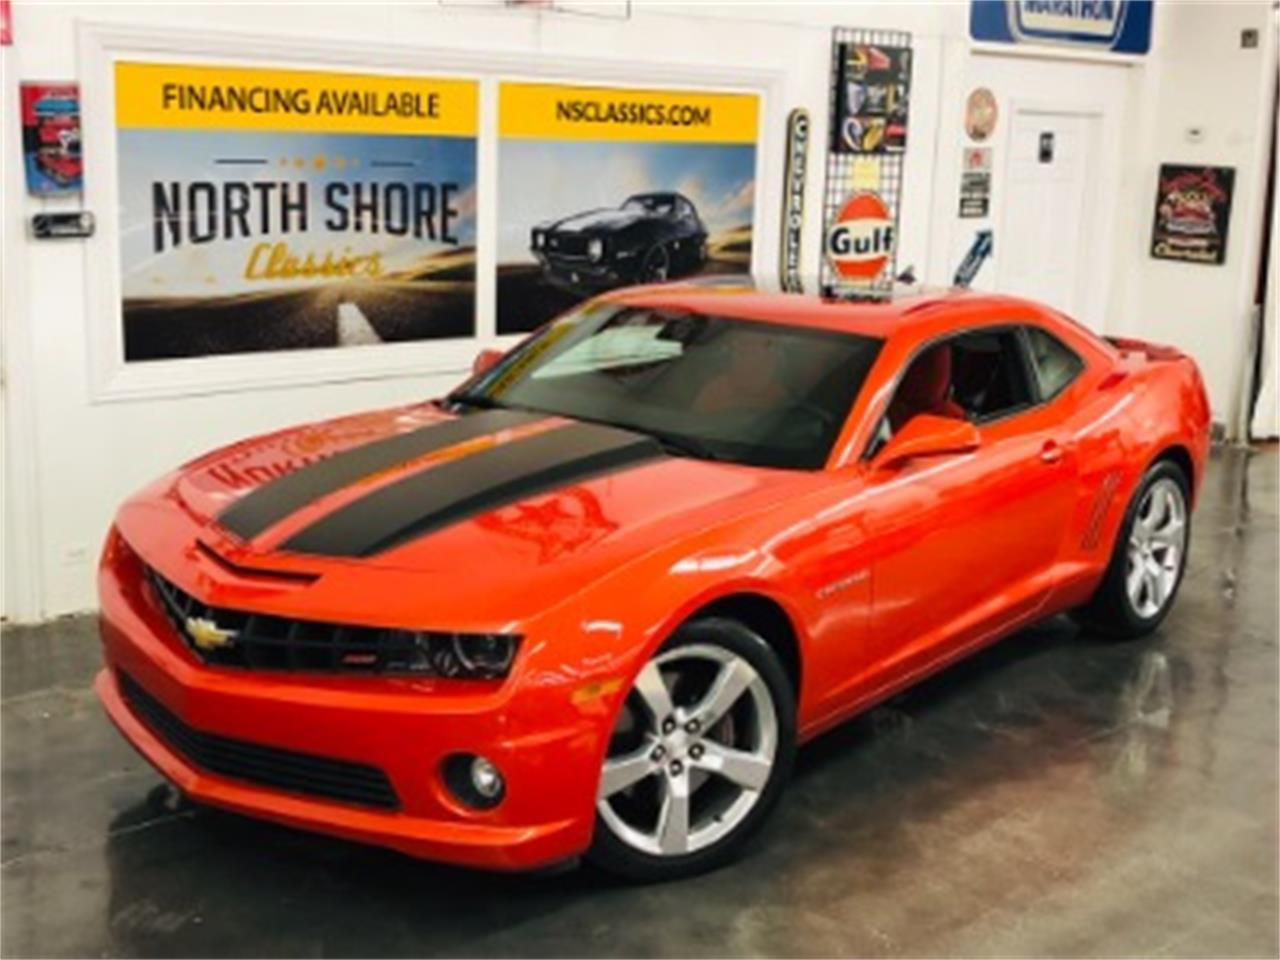 2011 Camaro For Sale >> 2011 Chevrolet Camaro For Sale Classiccars Com Cc 1174756